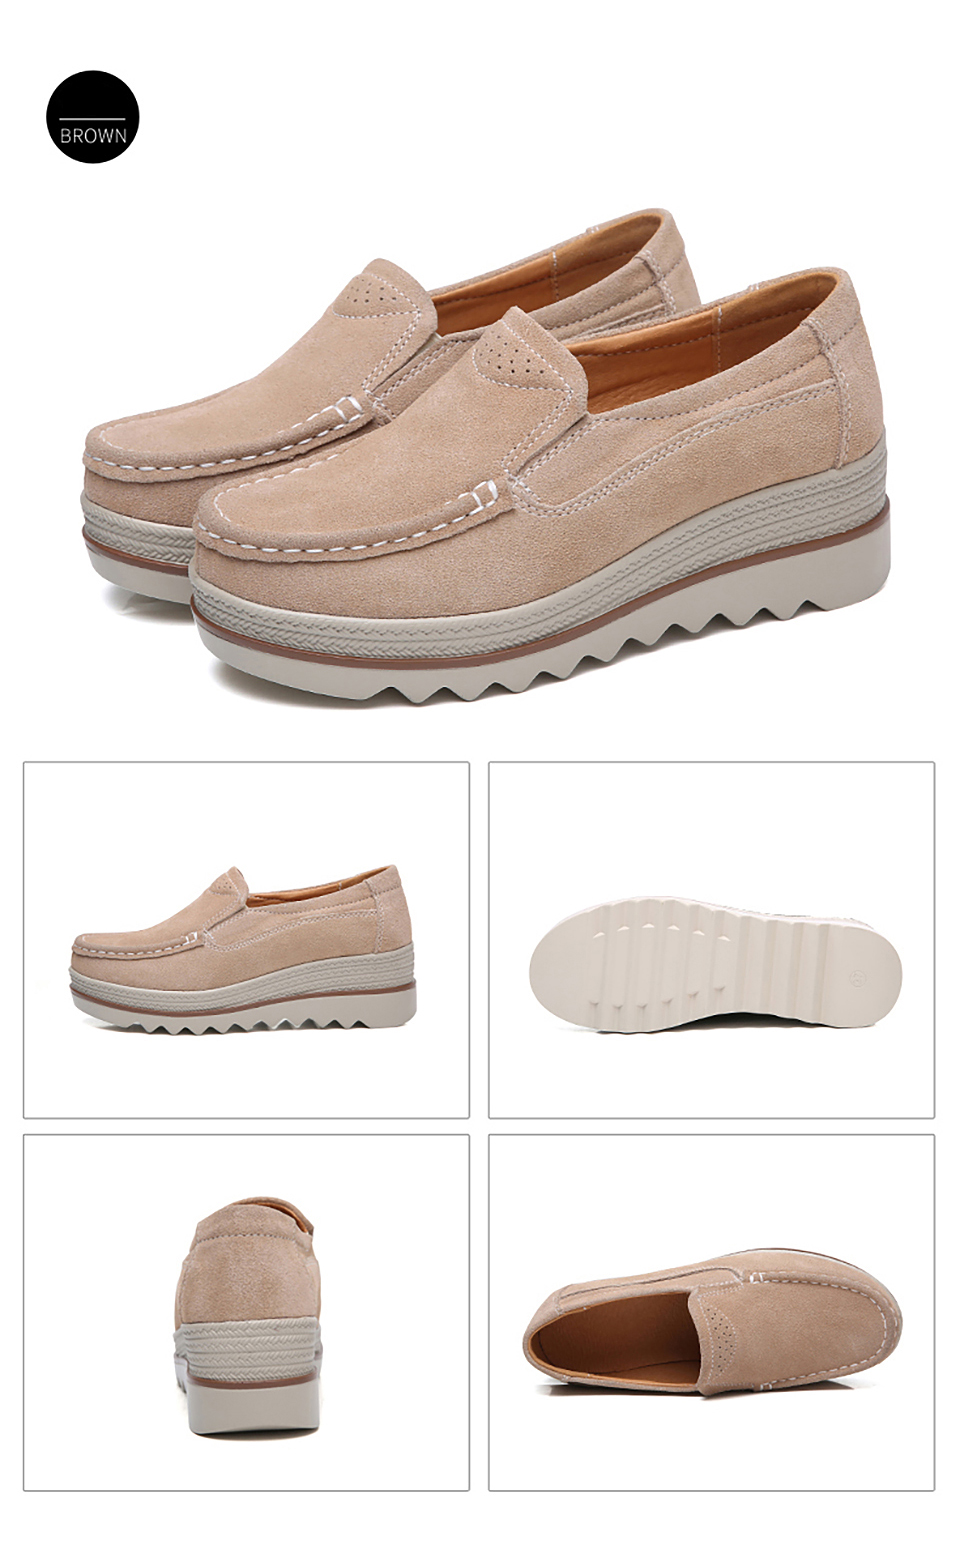 HTB1hkNROjTpK1RjSZKPq6y3UpXac 2019 Spring Women Flats Shoes Platform Sneakers Slip On Flats Leather Suede Ladies Loafers Moccasins Casual Shoes Women Creepers